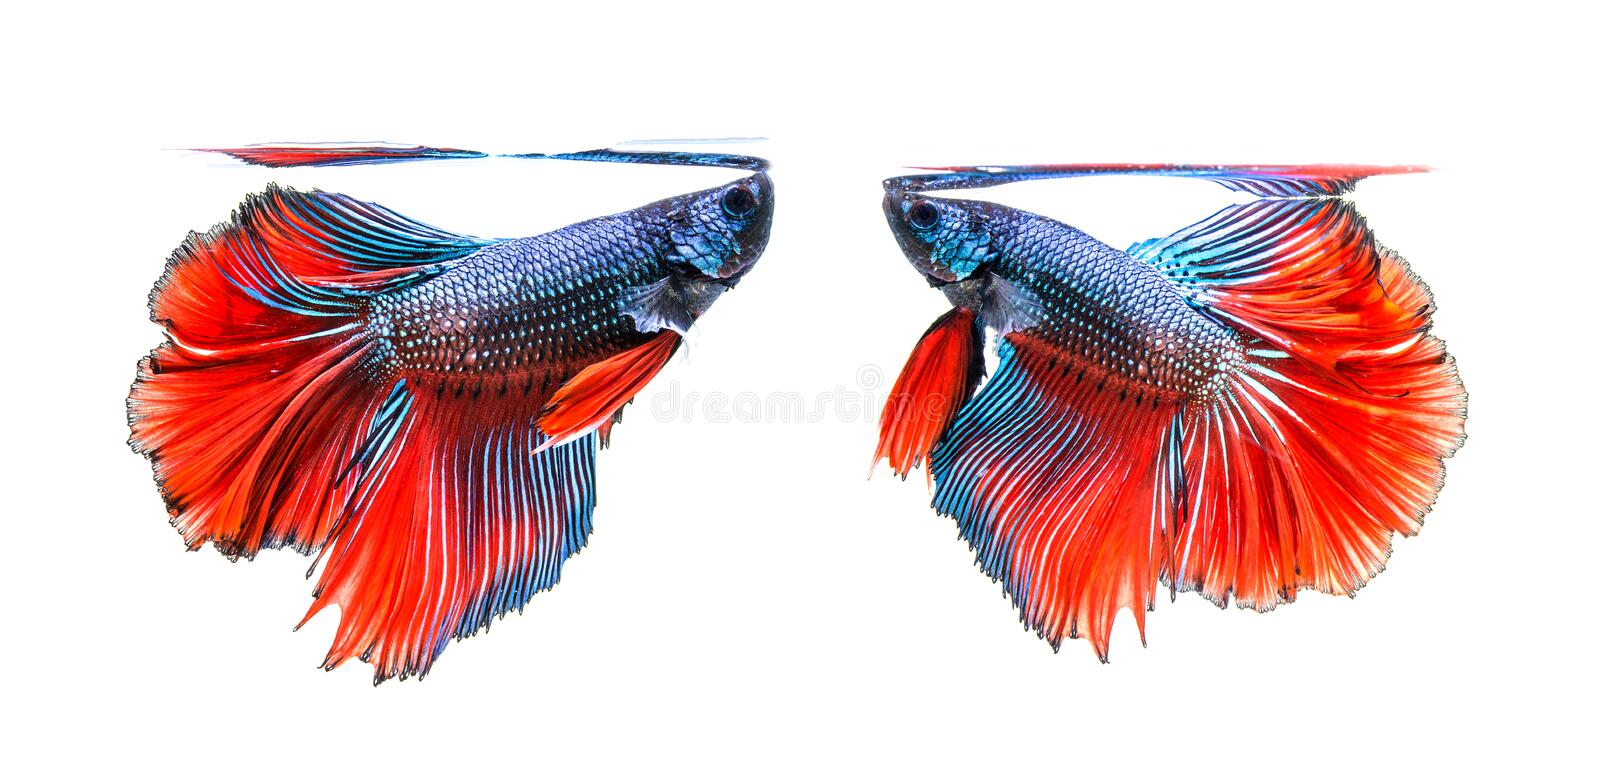 Fighting of two fish isolated on white background. siamese fighting fish. royalty free stock photo